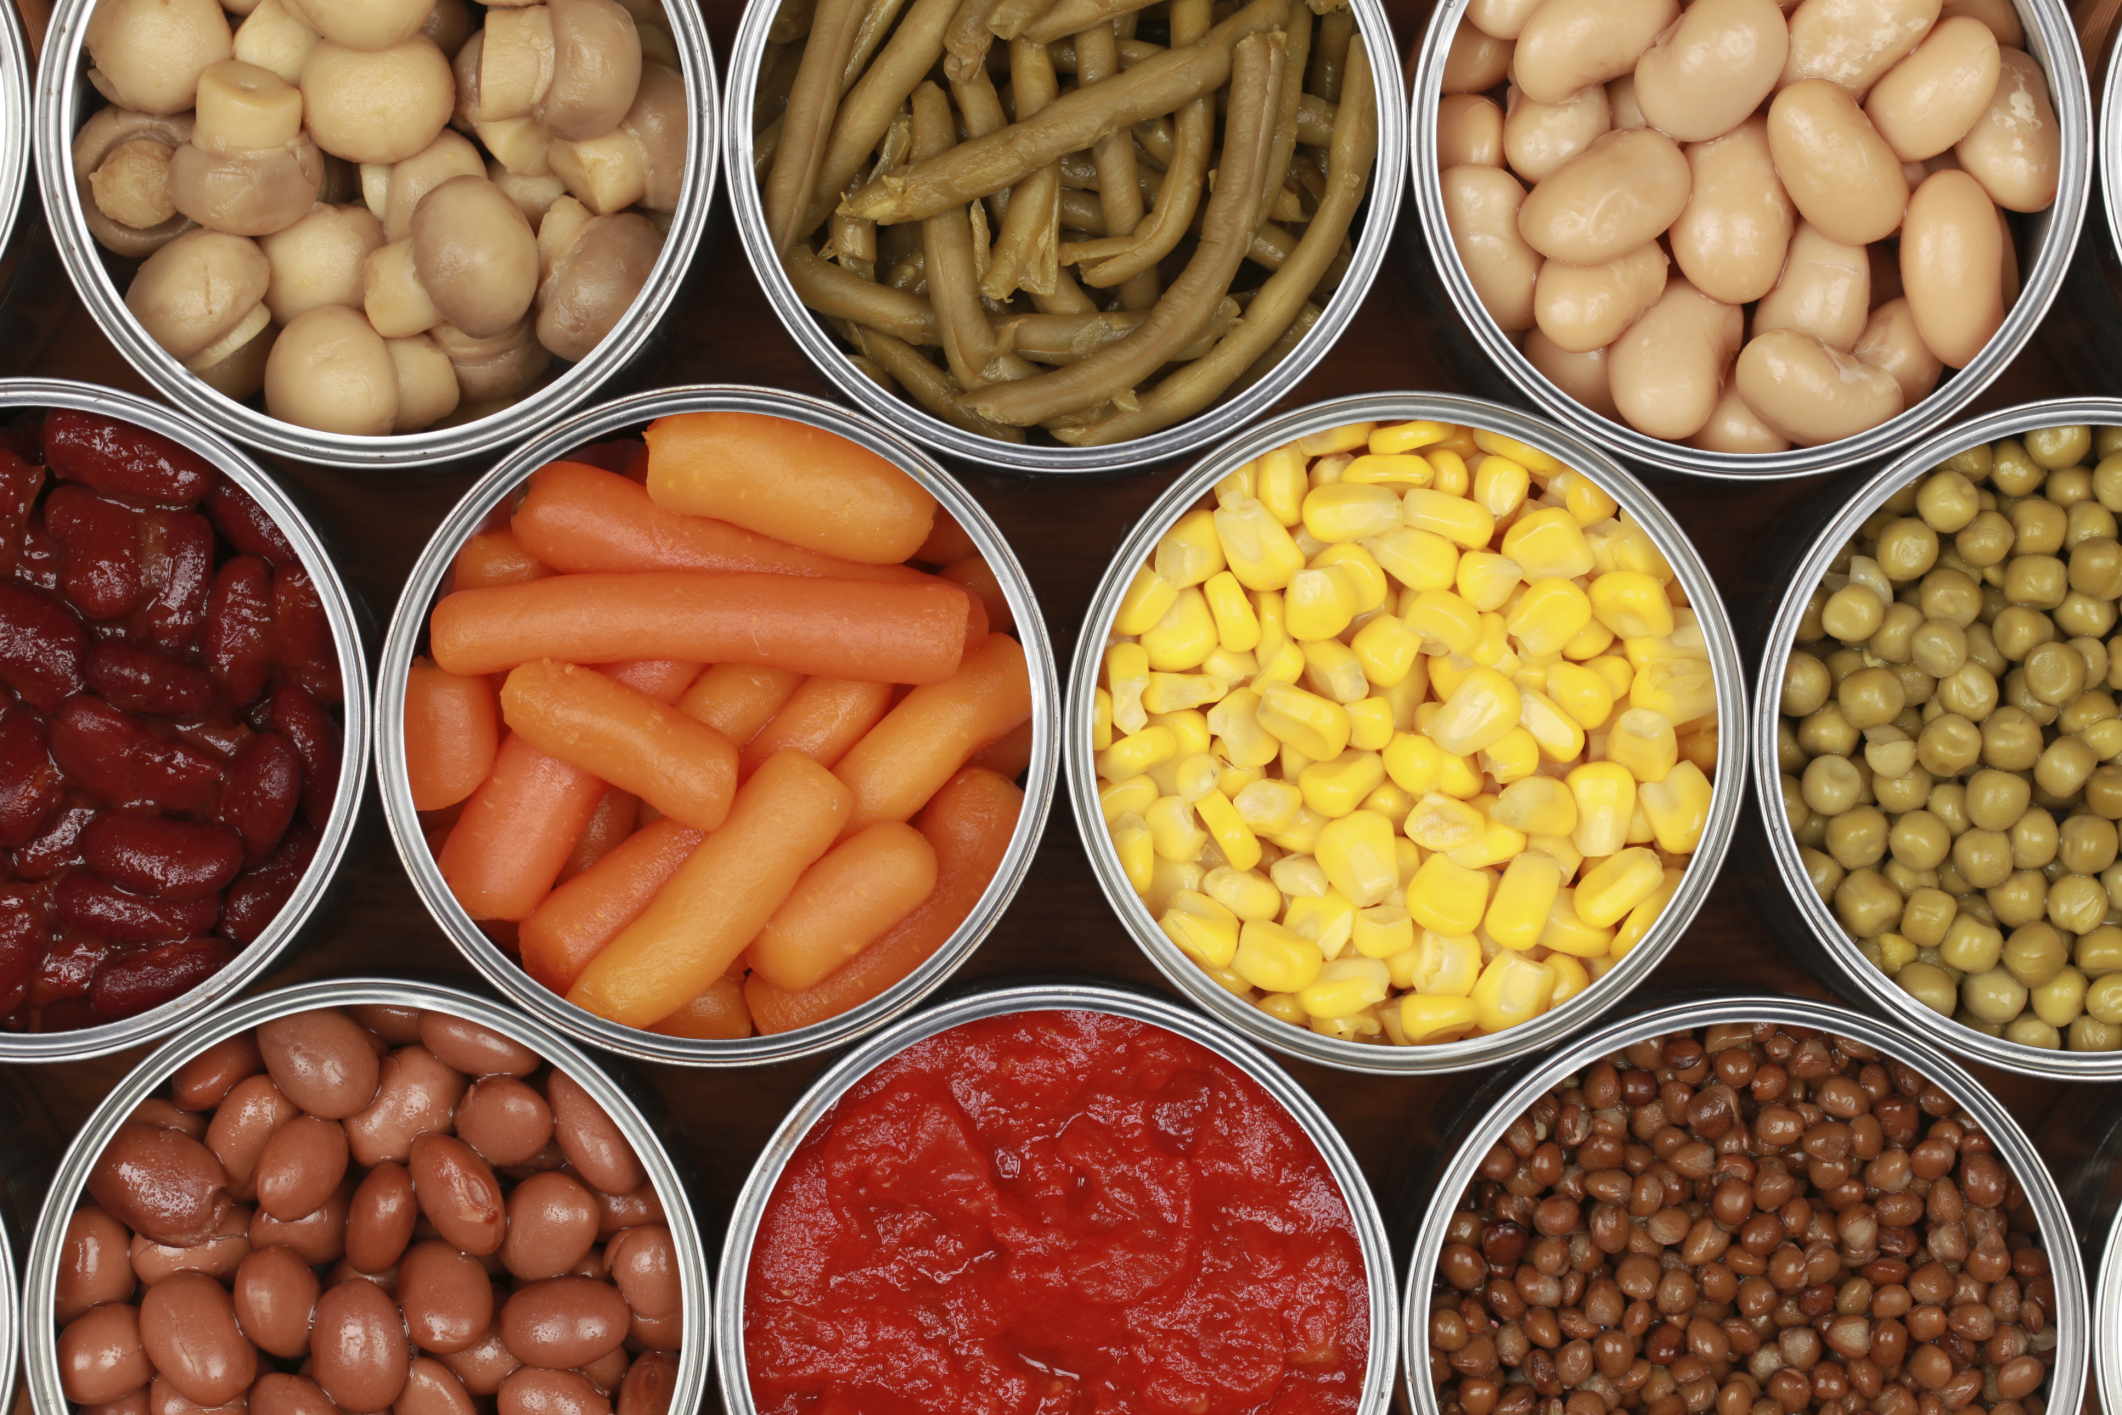 Meet the canned food capital of Britain